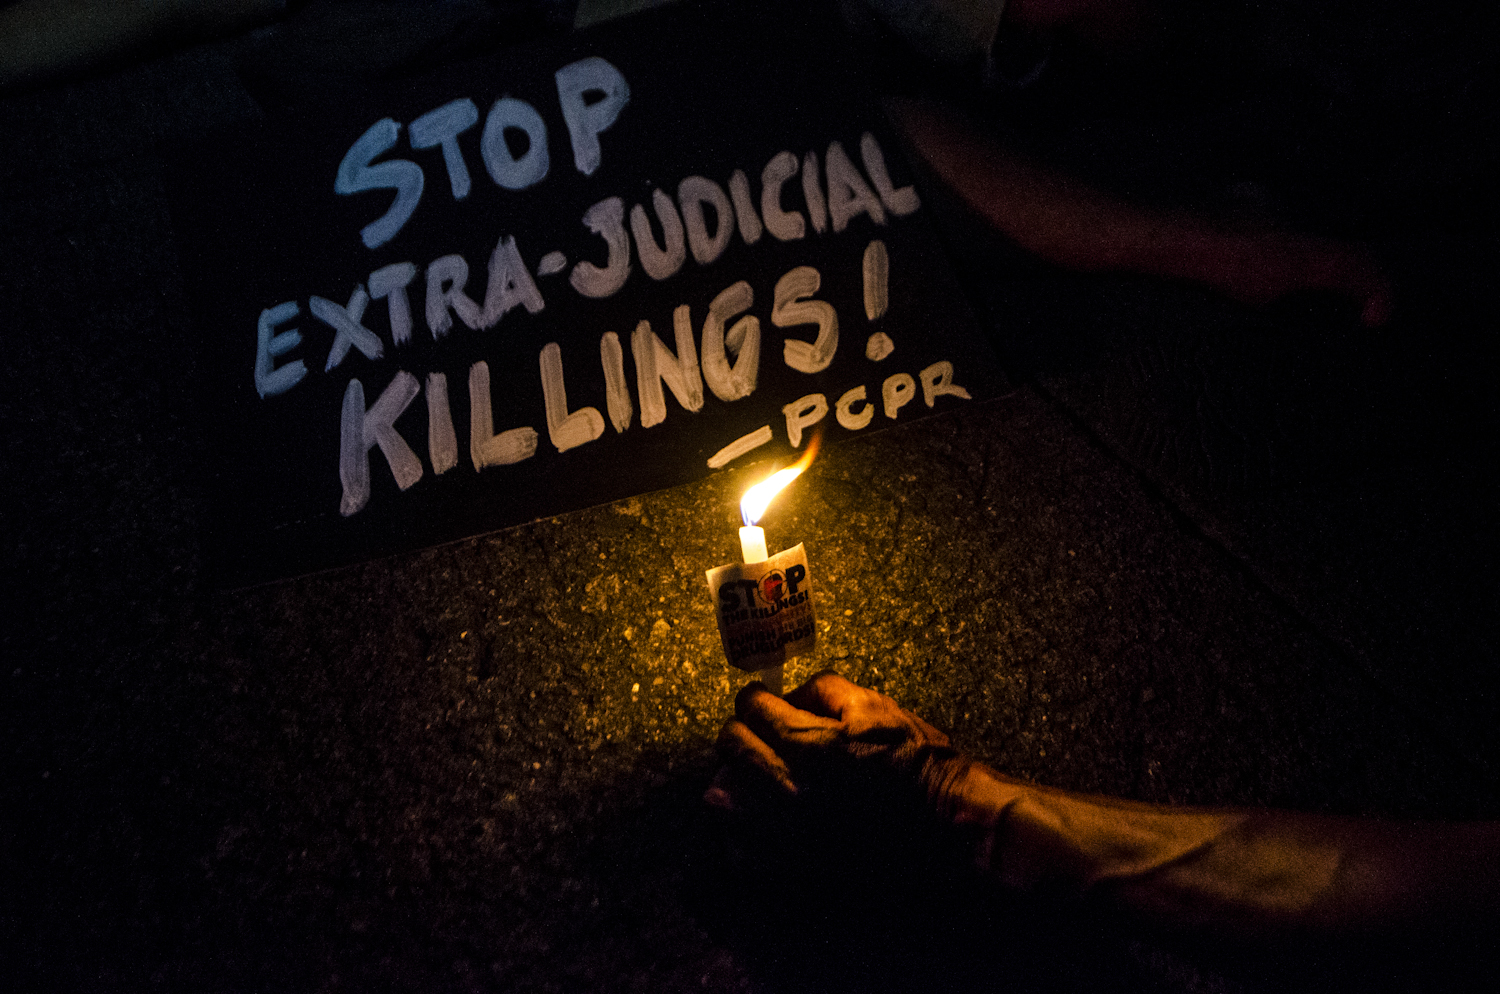 House Committee Drops Use Of Extrajudicial Killings In